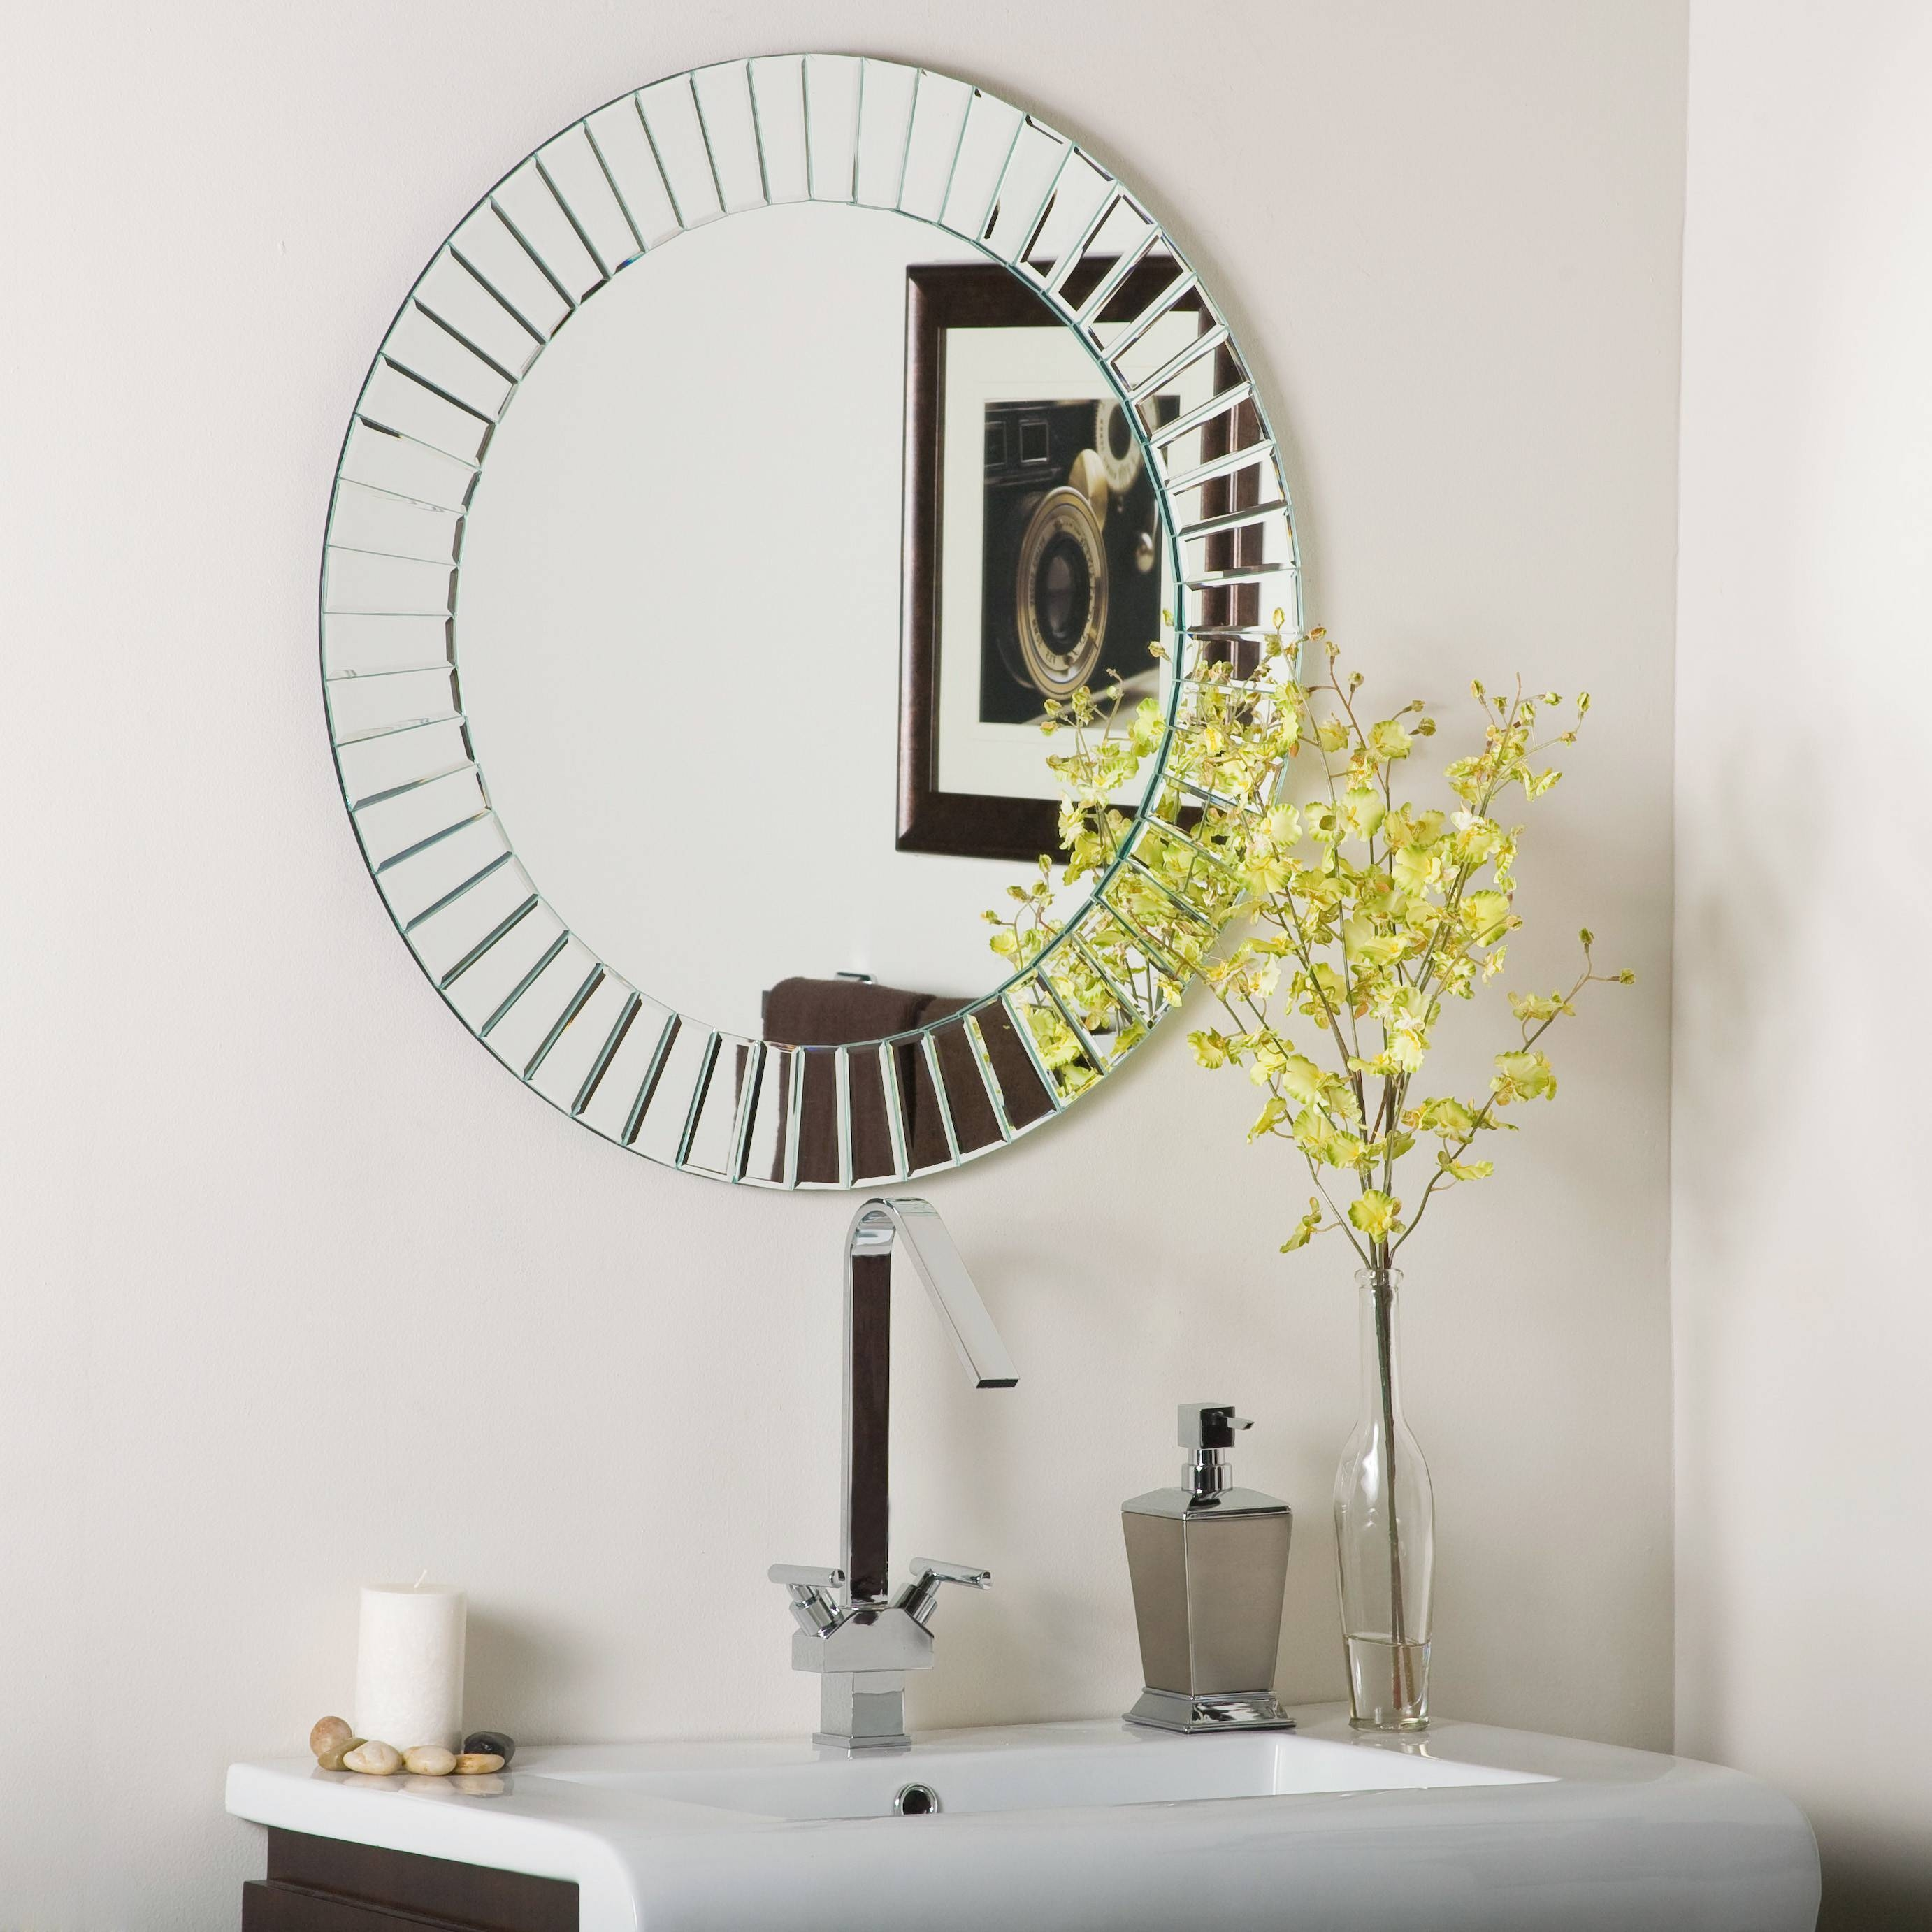 Bathroom: Light Up Your Home With Frameless Beveled Mirror pertaining to Unframed Wall Mirrors (Image 6 of 15)